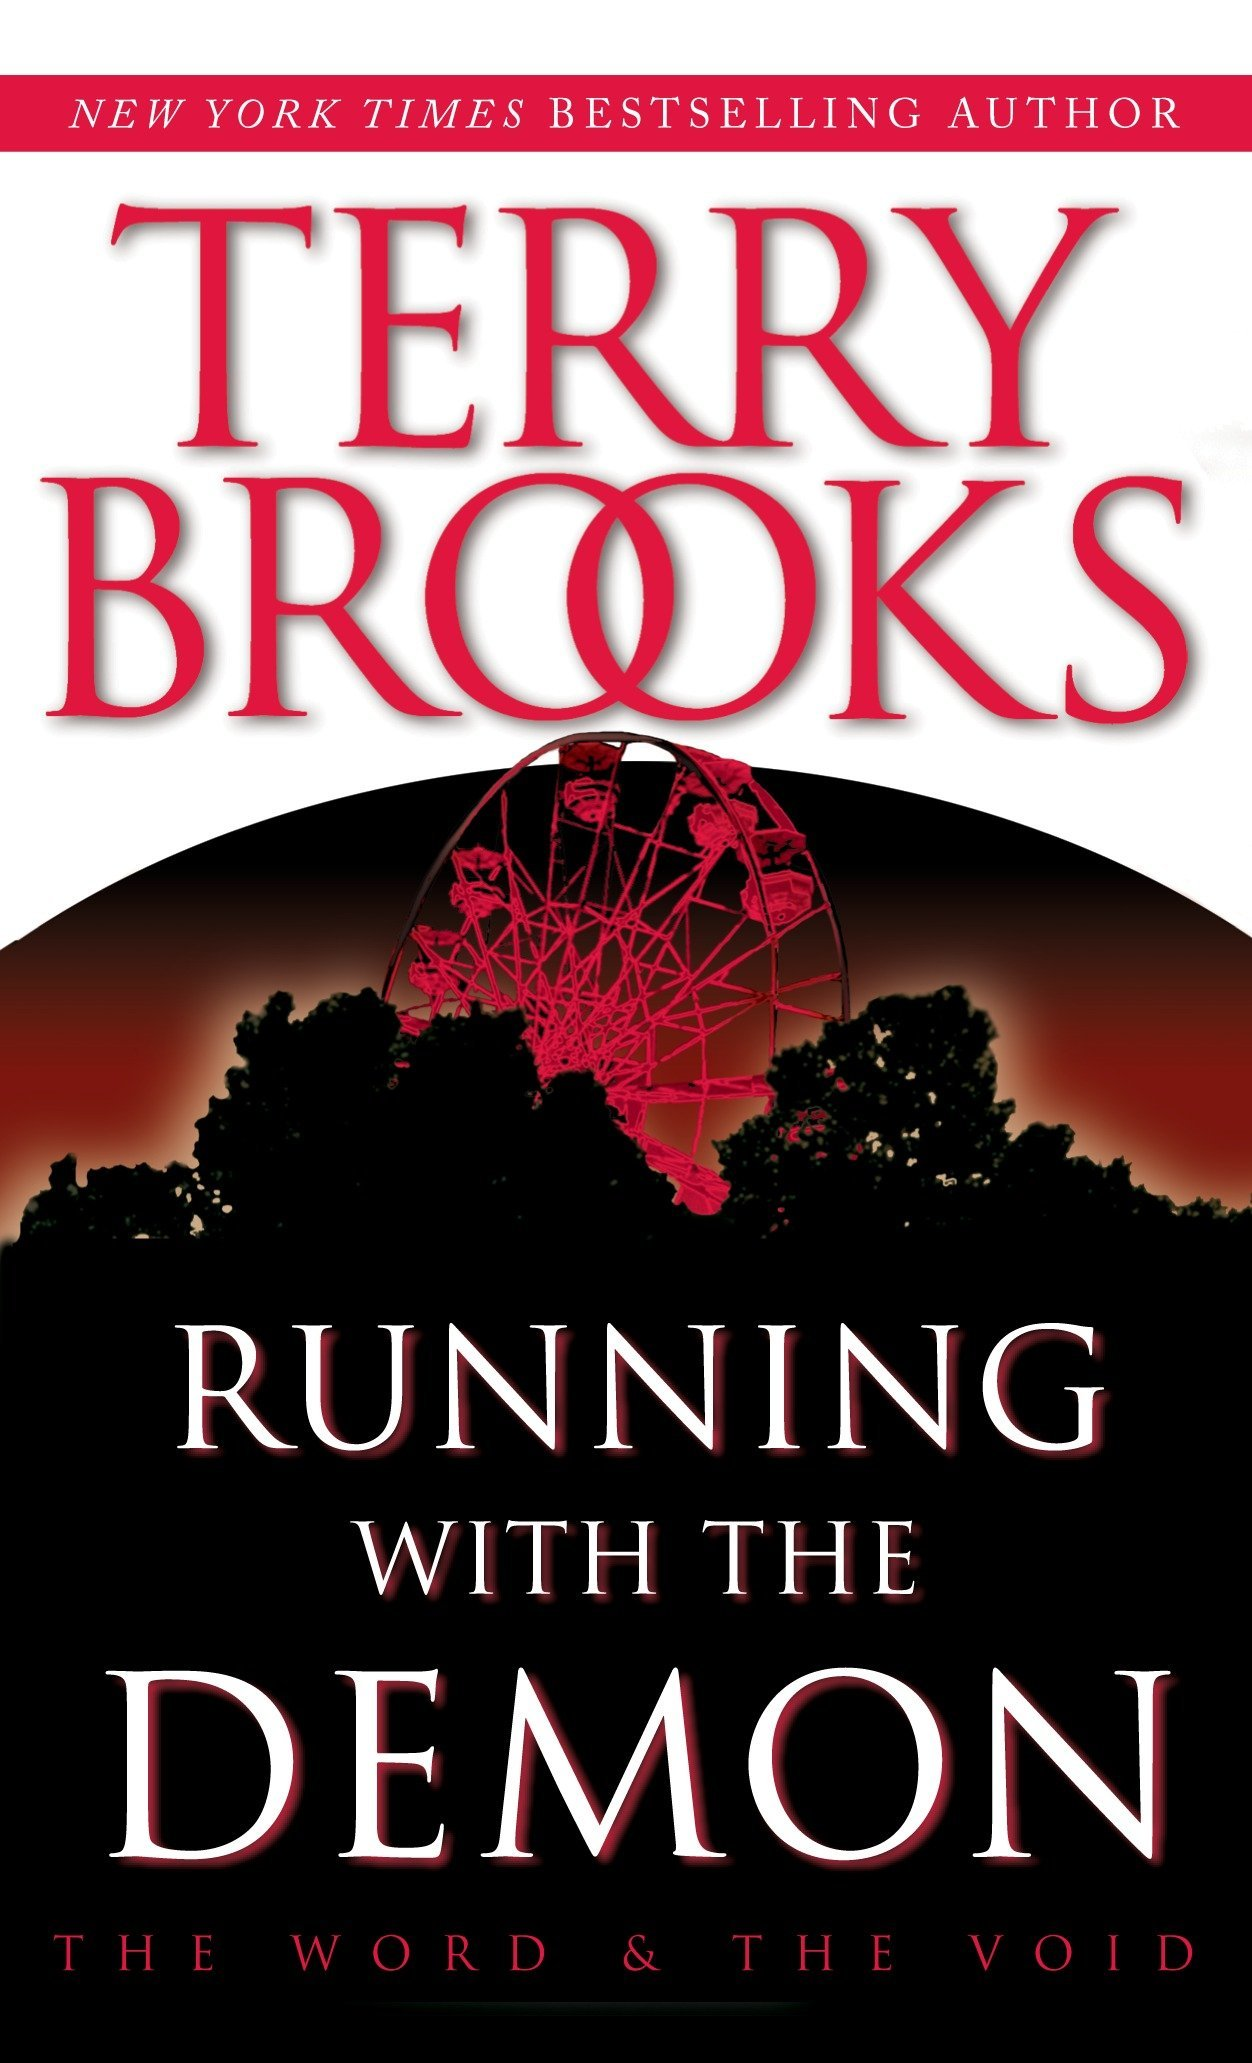 6c01b77f469 Amazon.fr - Running with the Demon - Terry Brooks - Livres